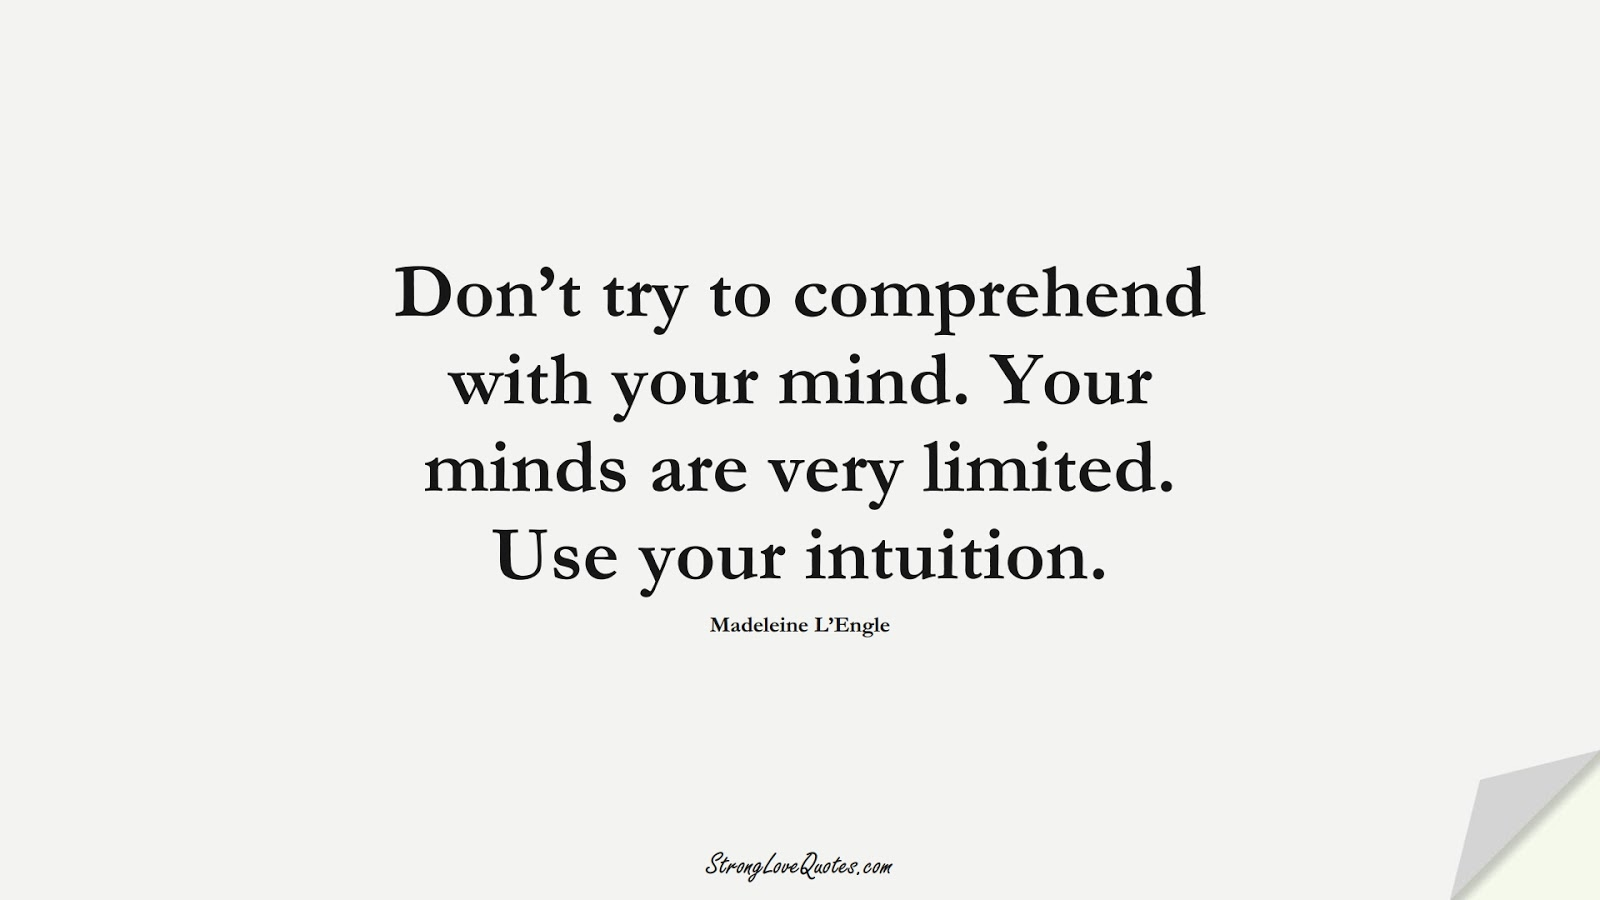 Don't try to comprehend with your mind. Your minds are very limited. Use your intuition. (Madeleine L'Engle);  #KnowledgeQuotes